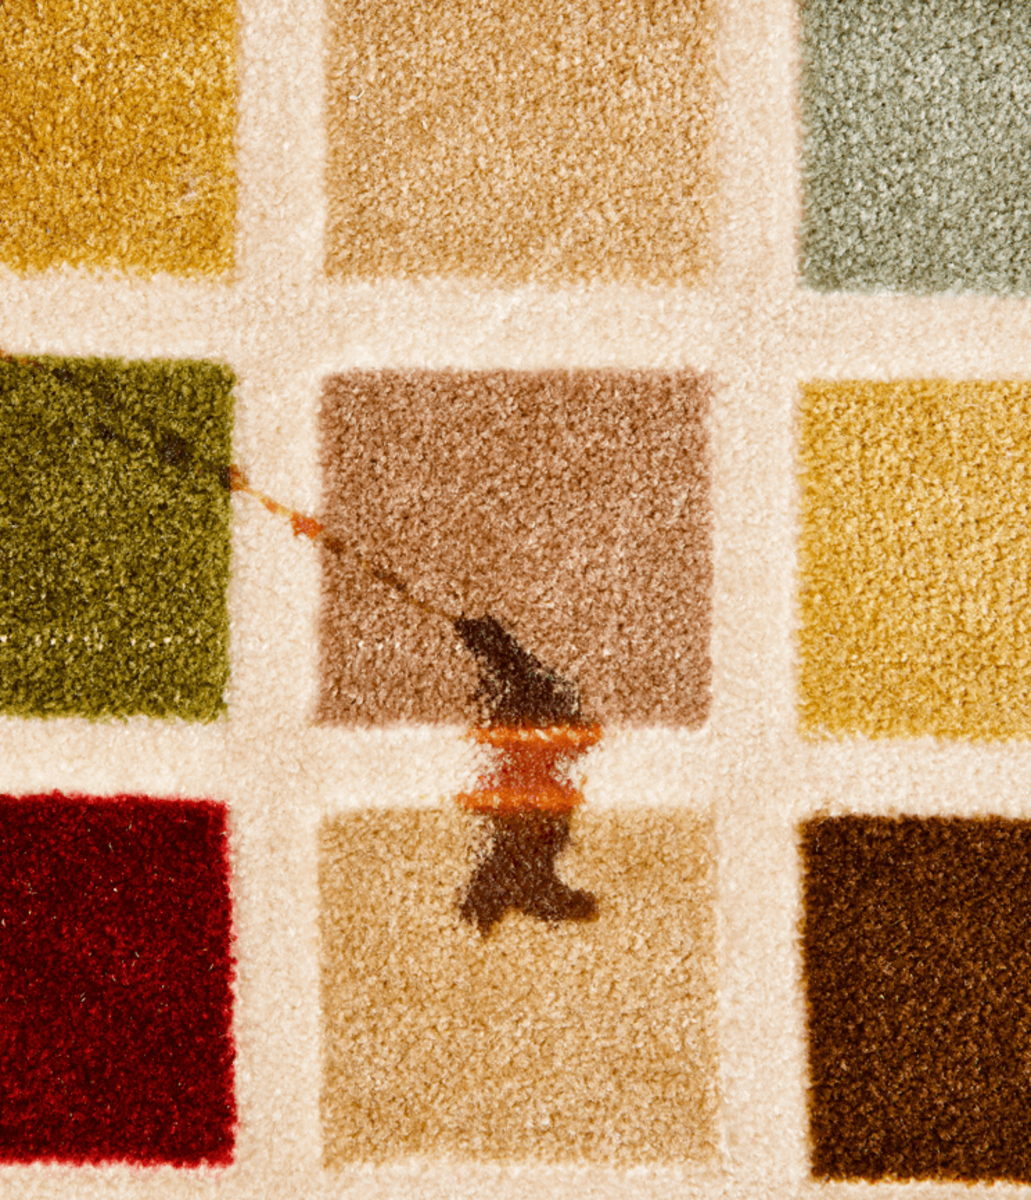 Best Carpet Cleaning Solutions for Pet Stains